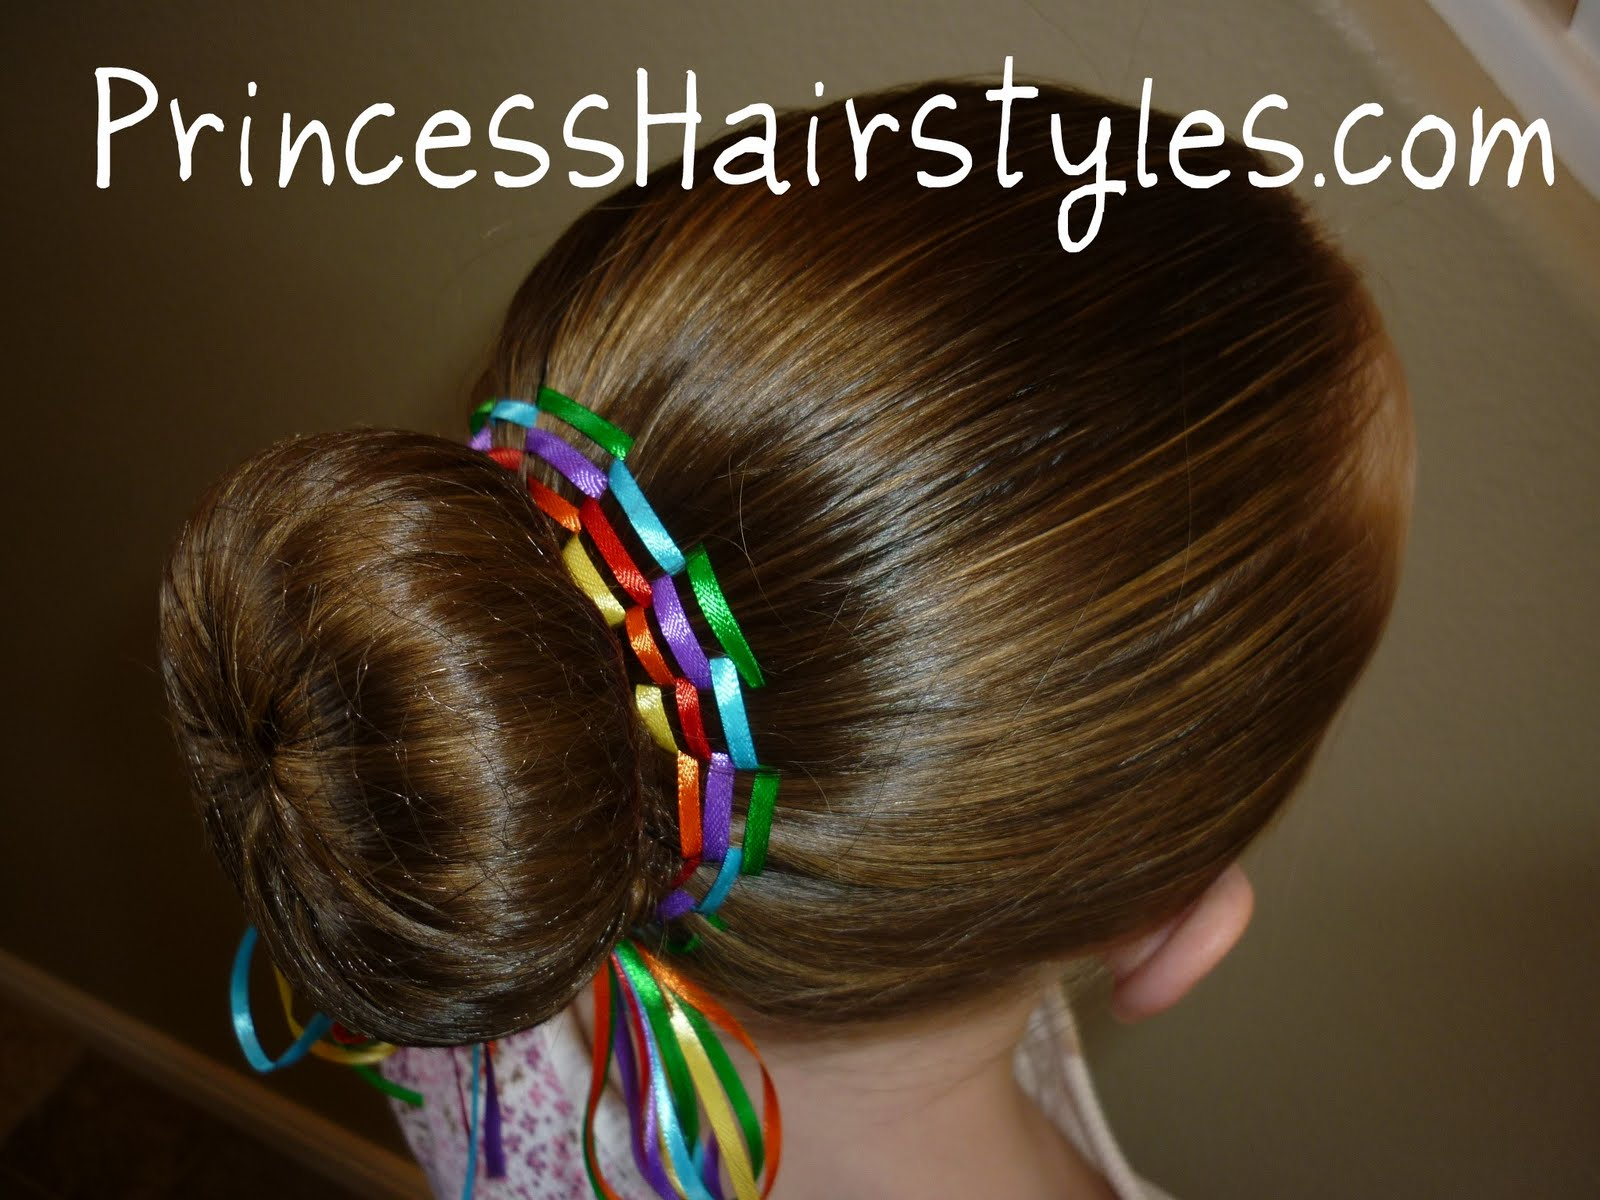 Thought This QuotRainbow Bunquot Would Be A Cute Hairstyle For A Dance